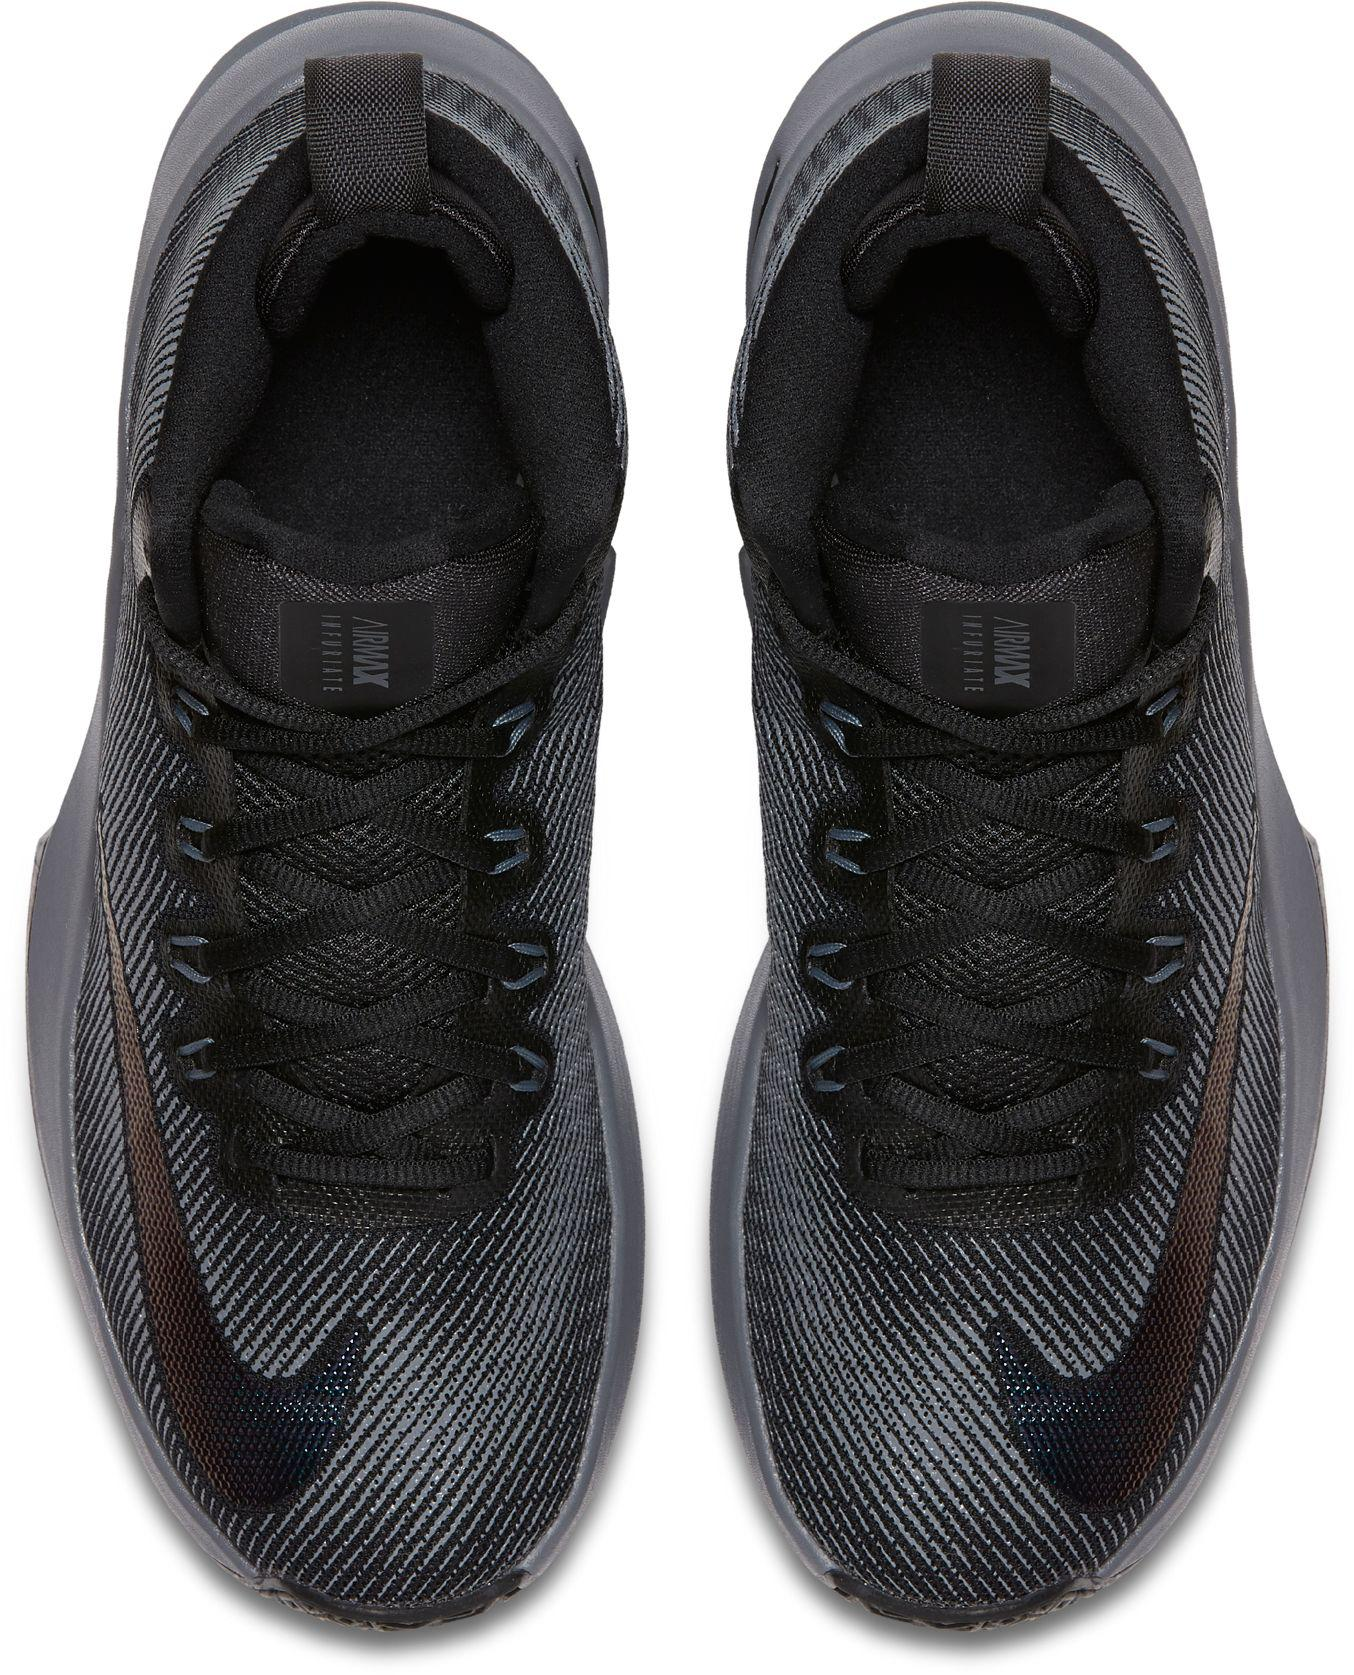 finest selection 87775 9ca75 Nike - Black Air Max Infuriate Mid Premium Basketball Shoes for Men - Lyst